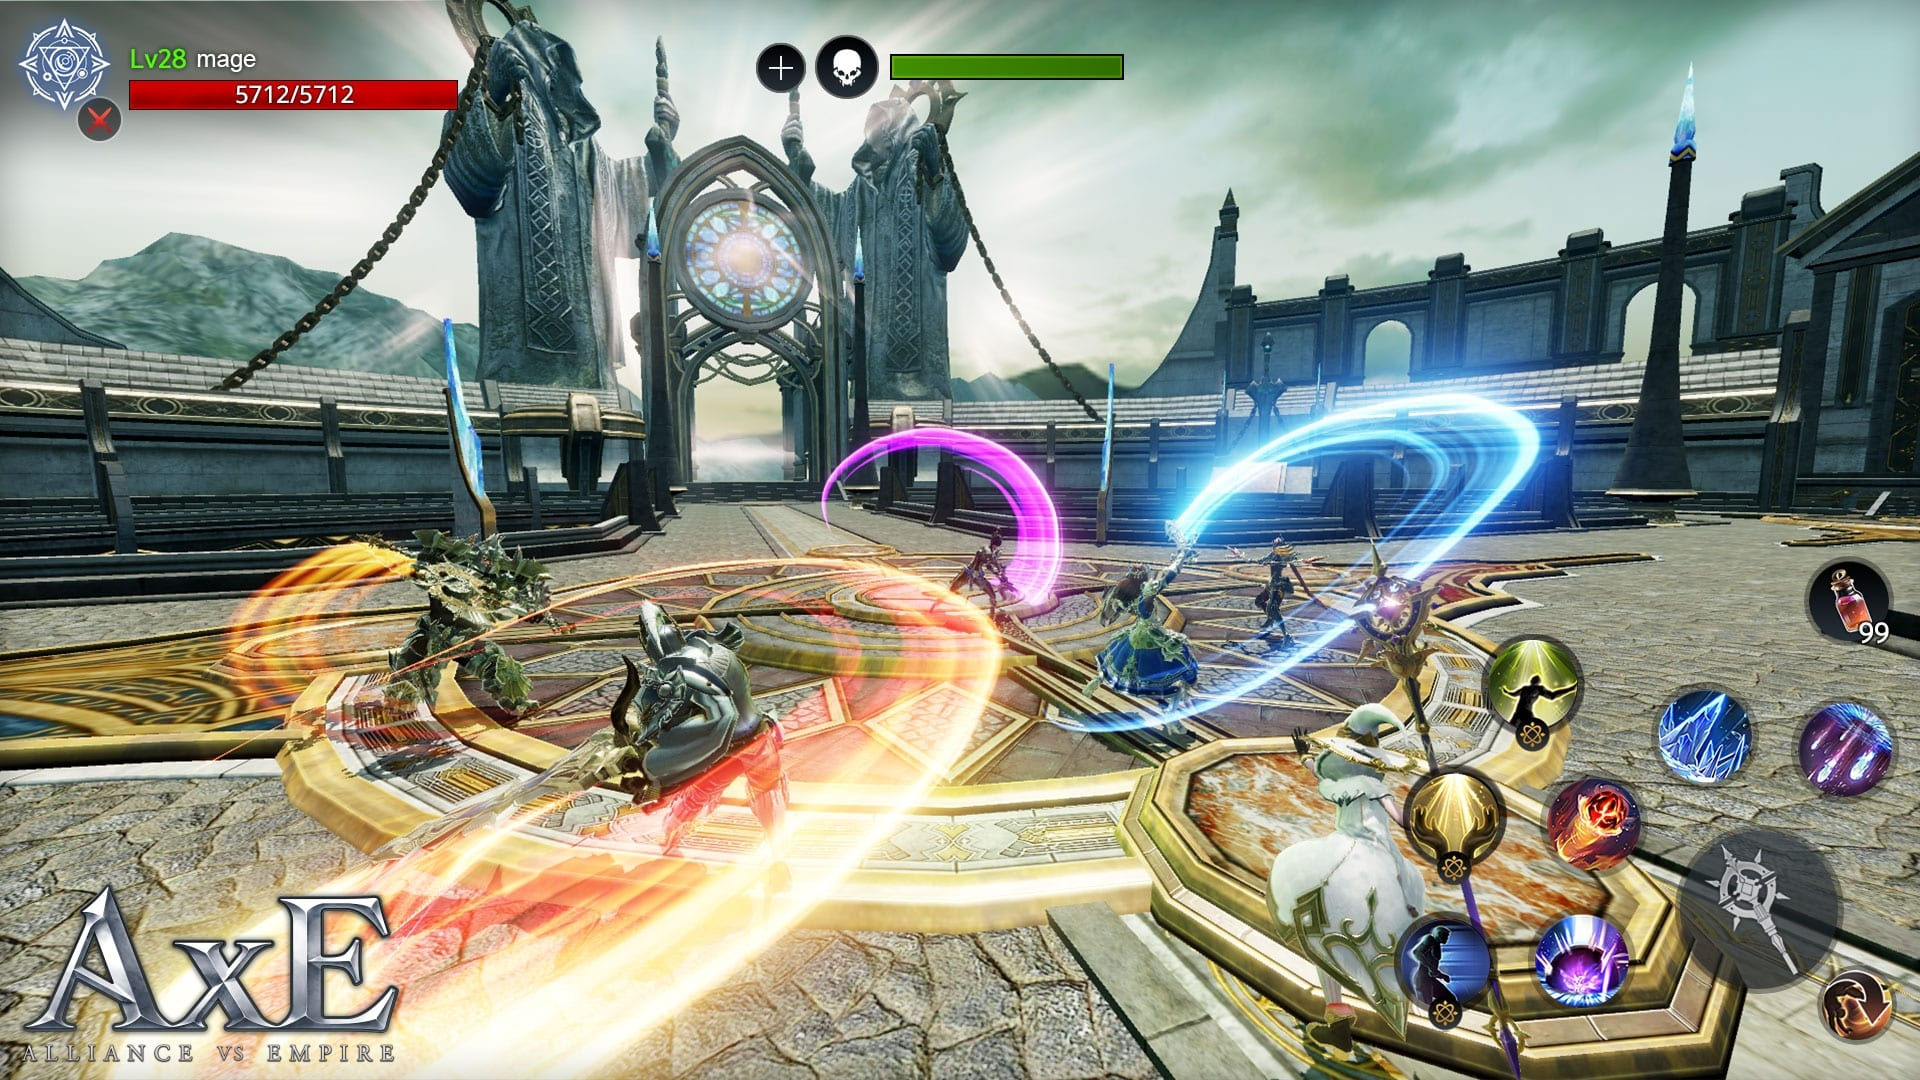 AxE: Alliance vs Empire – Nexon launches mobile MMORPG powered by